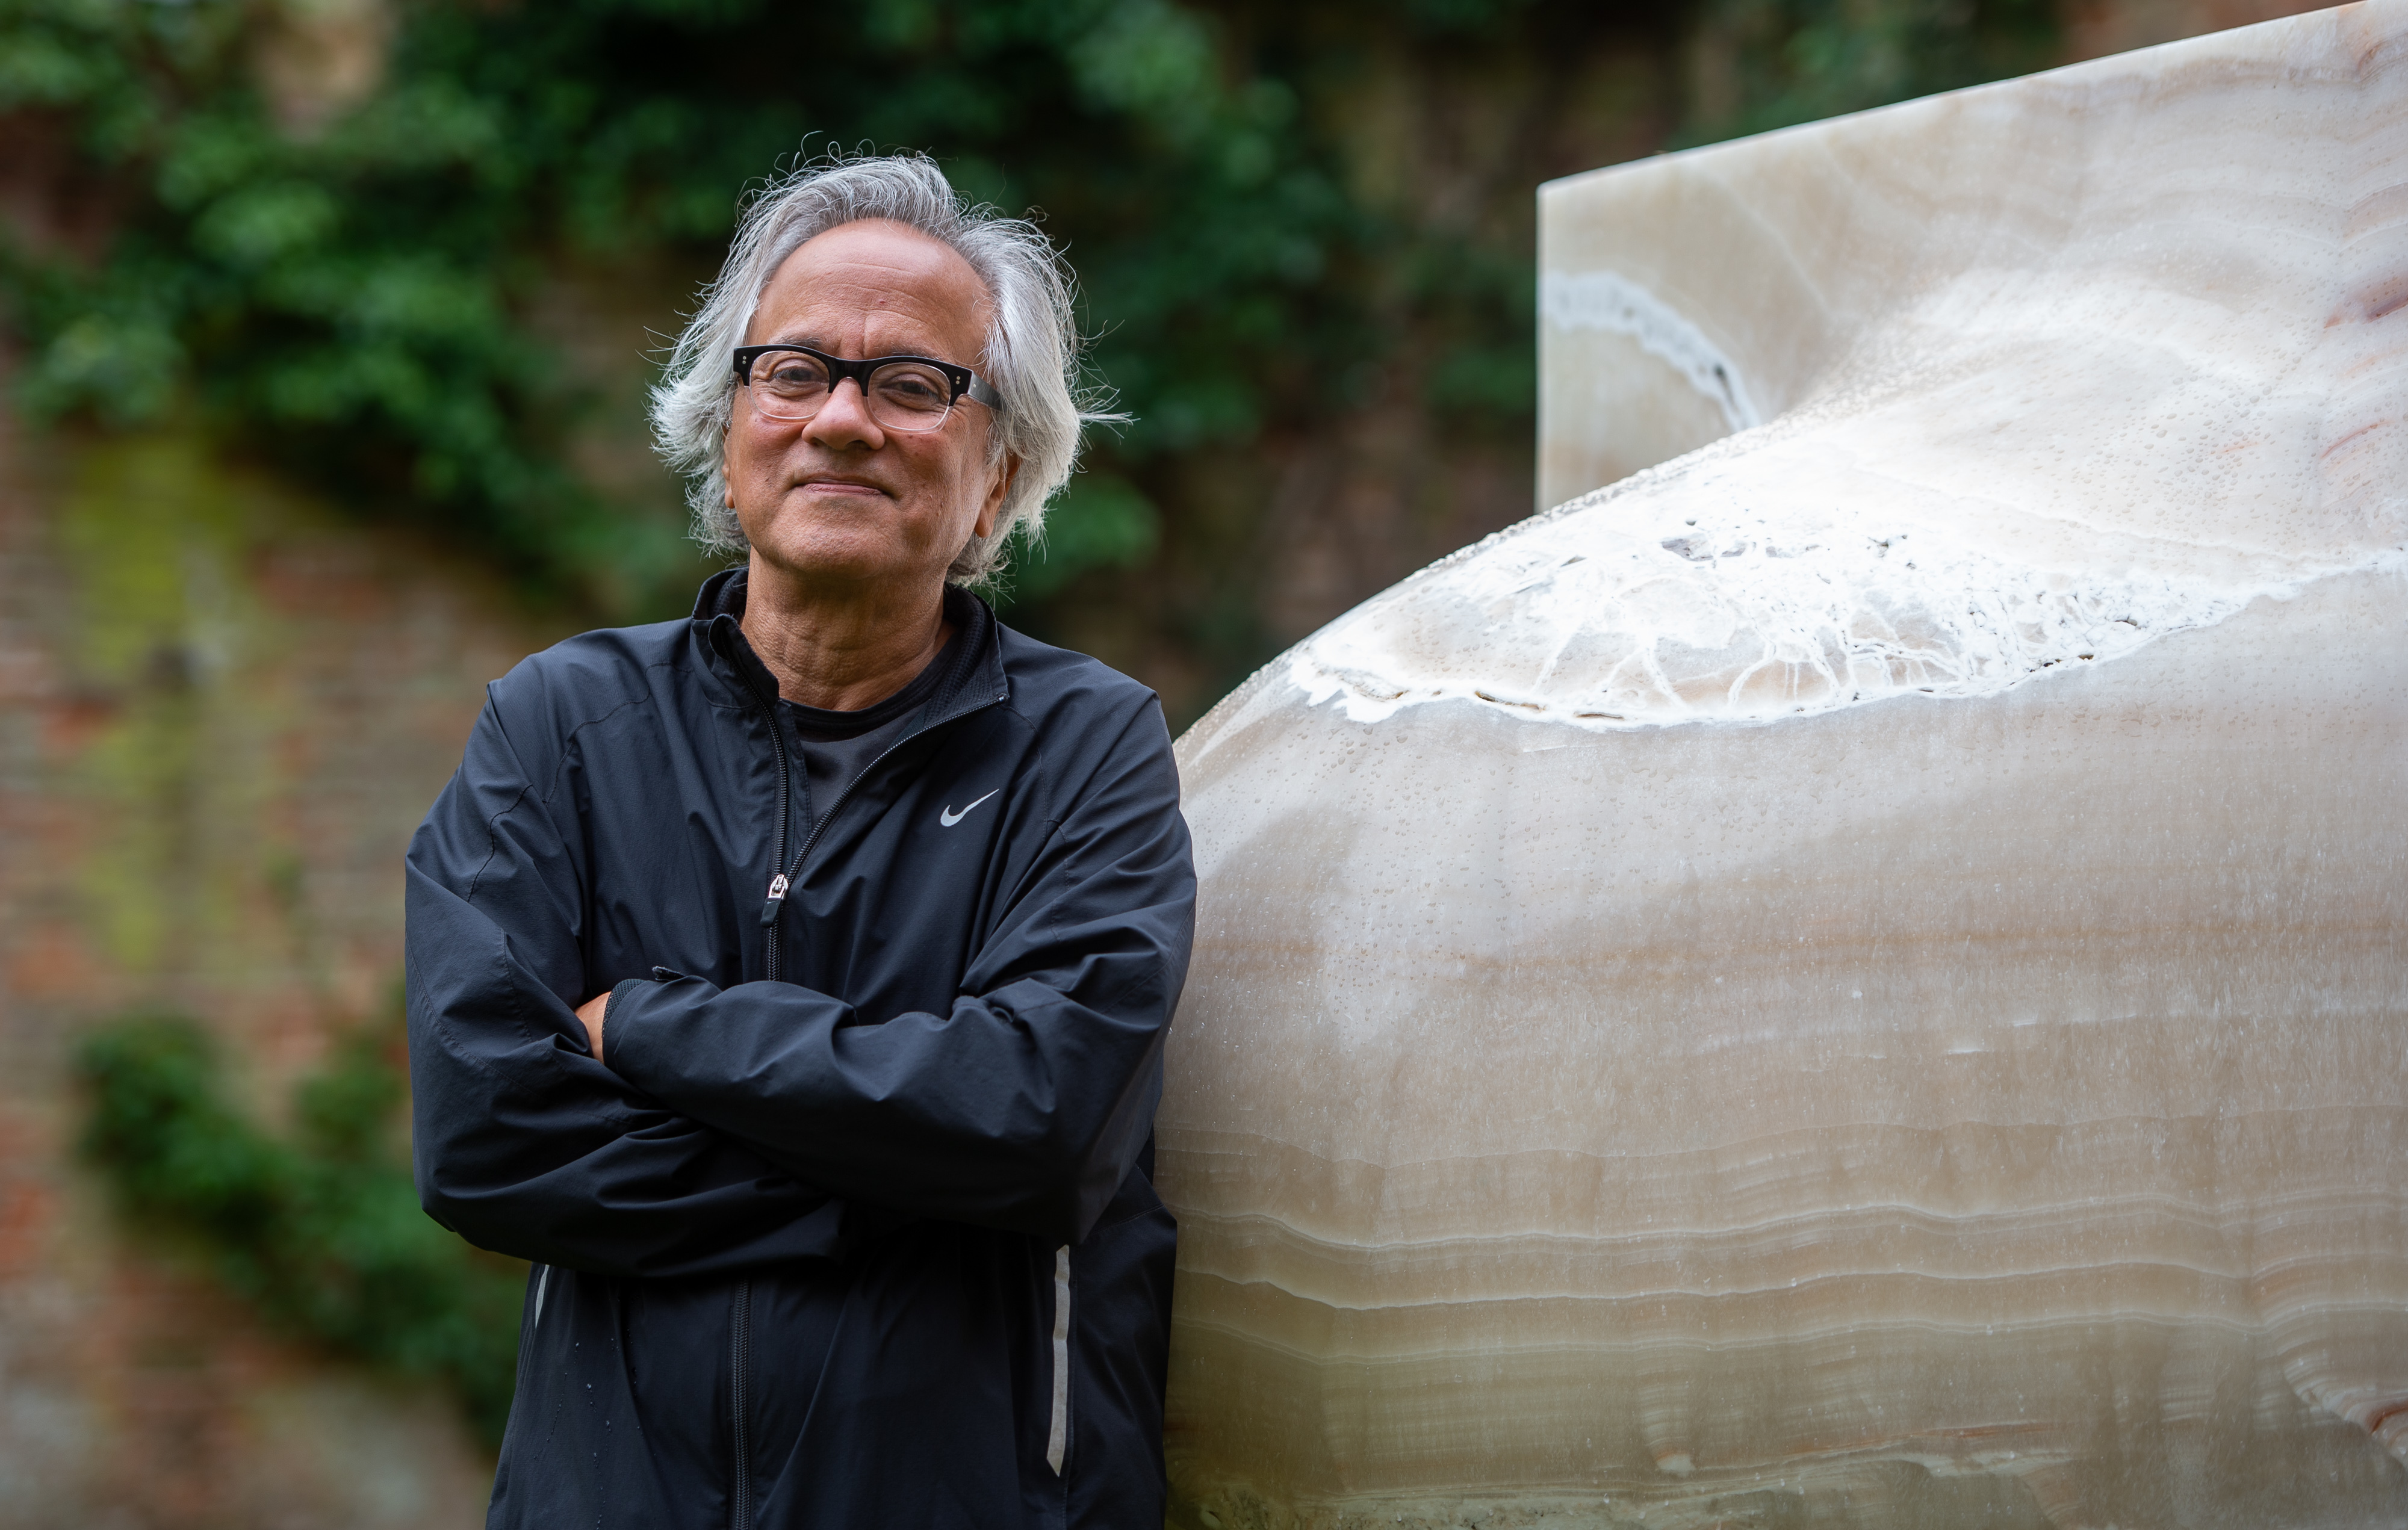 Sir Anish Kapoor puts on largest outdoor display of his work in UK | ITV News